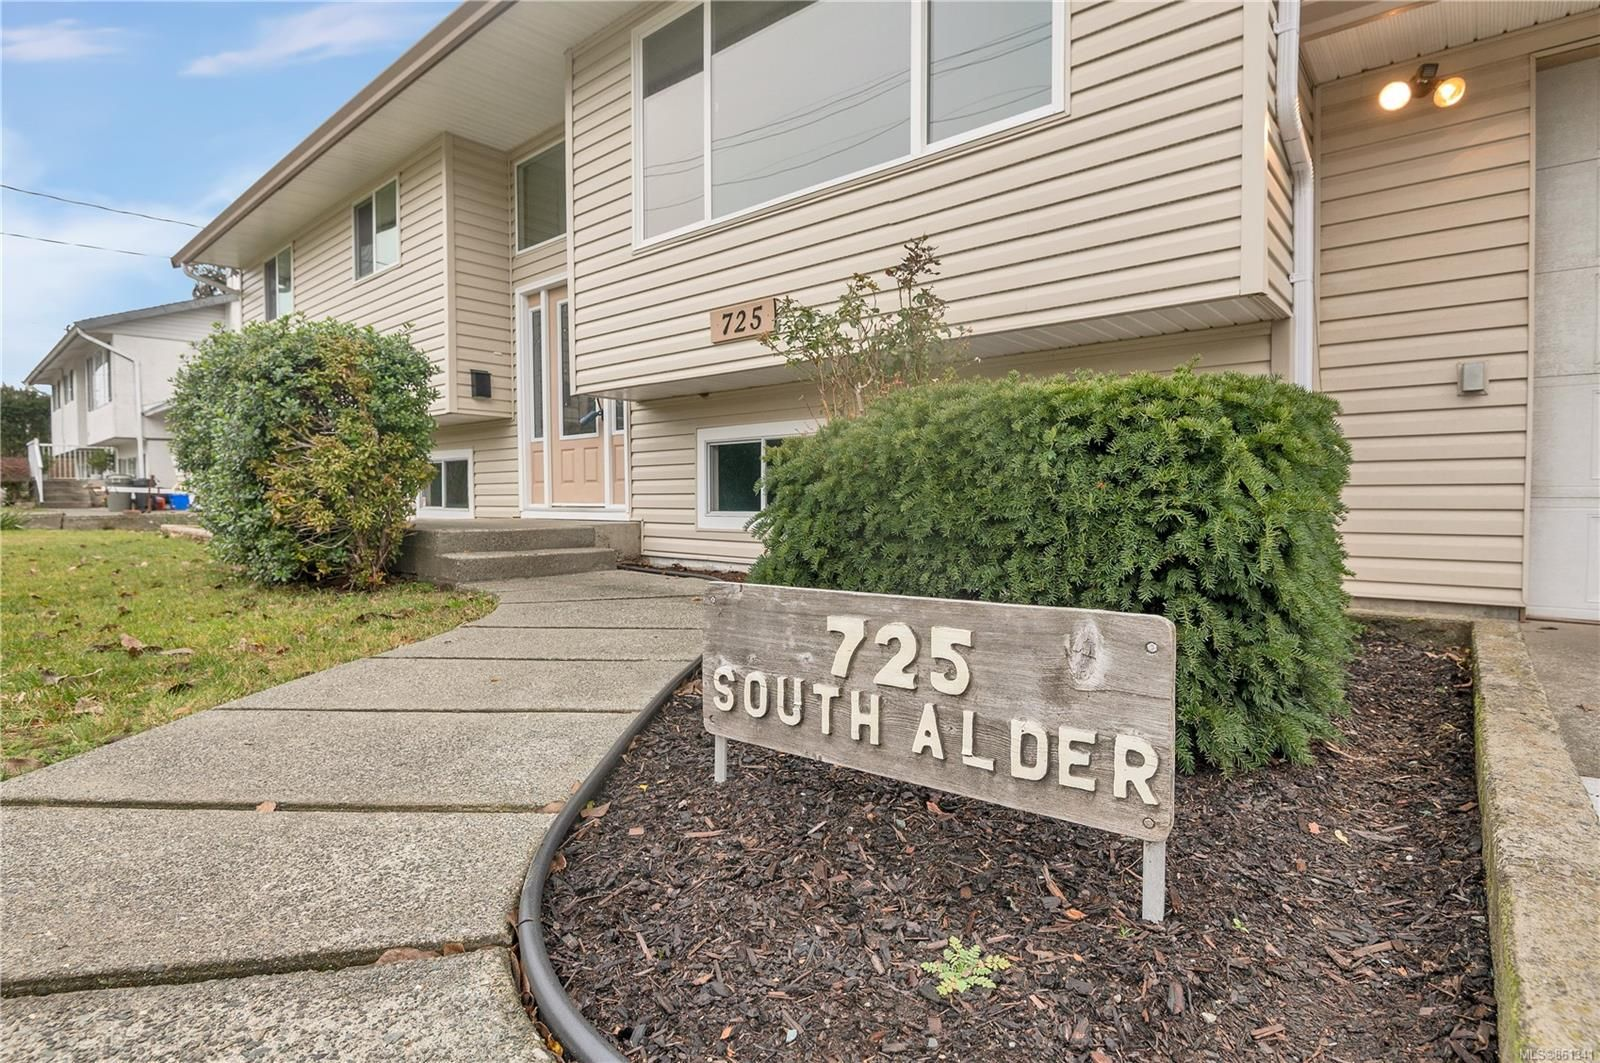 Main Photo: 725 S Alder St in : CR Campbell River Central House for sale (Campbell River)  : MLS®# 861341